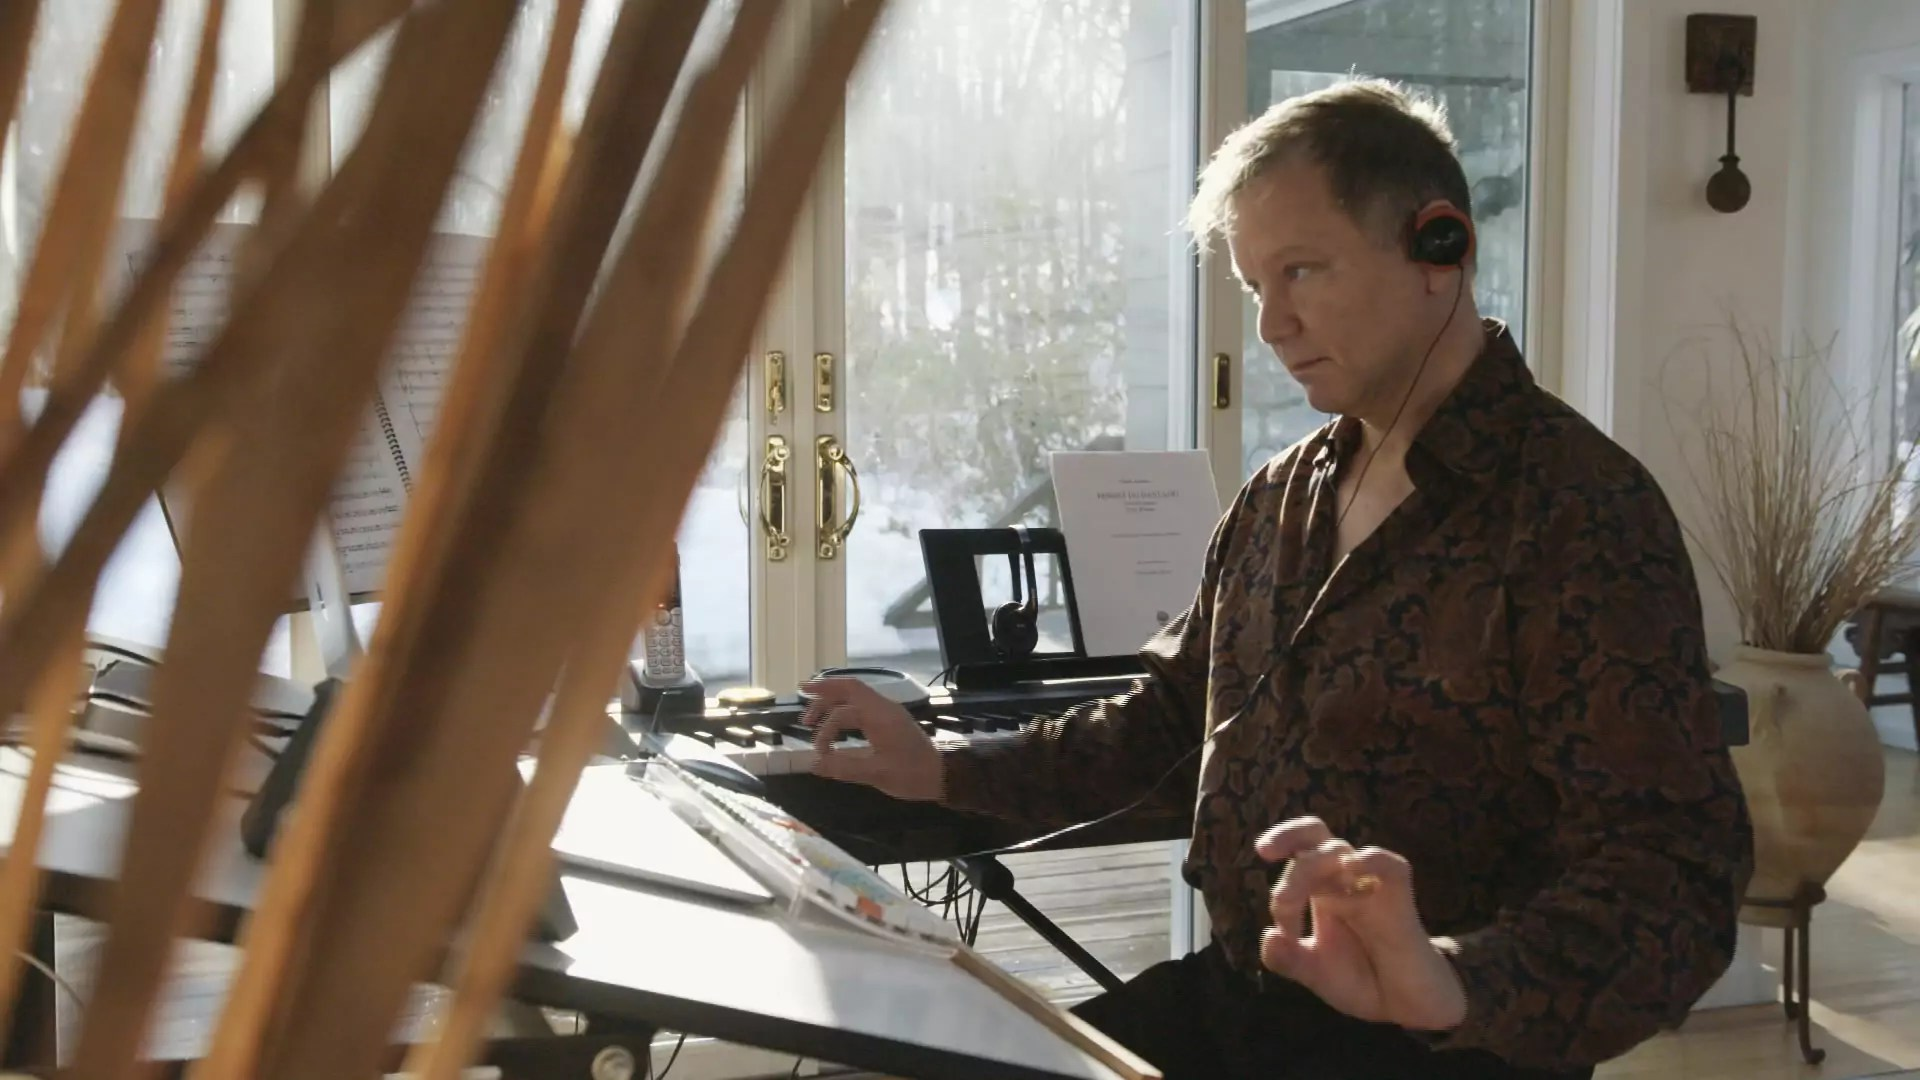 A man sits at a desk composing and listening to music